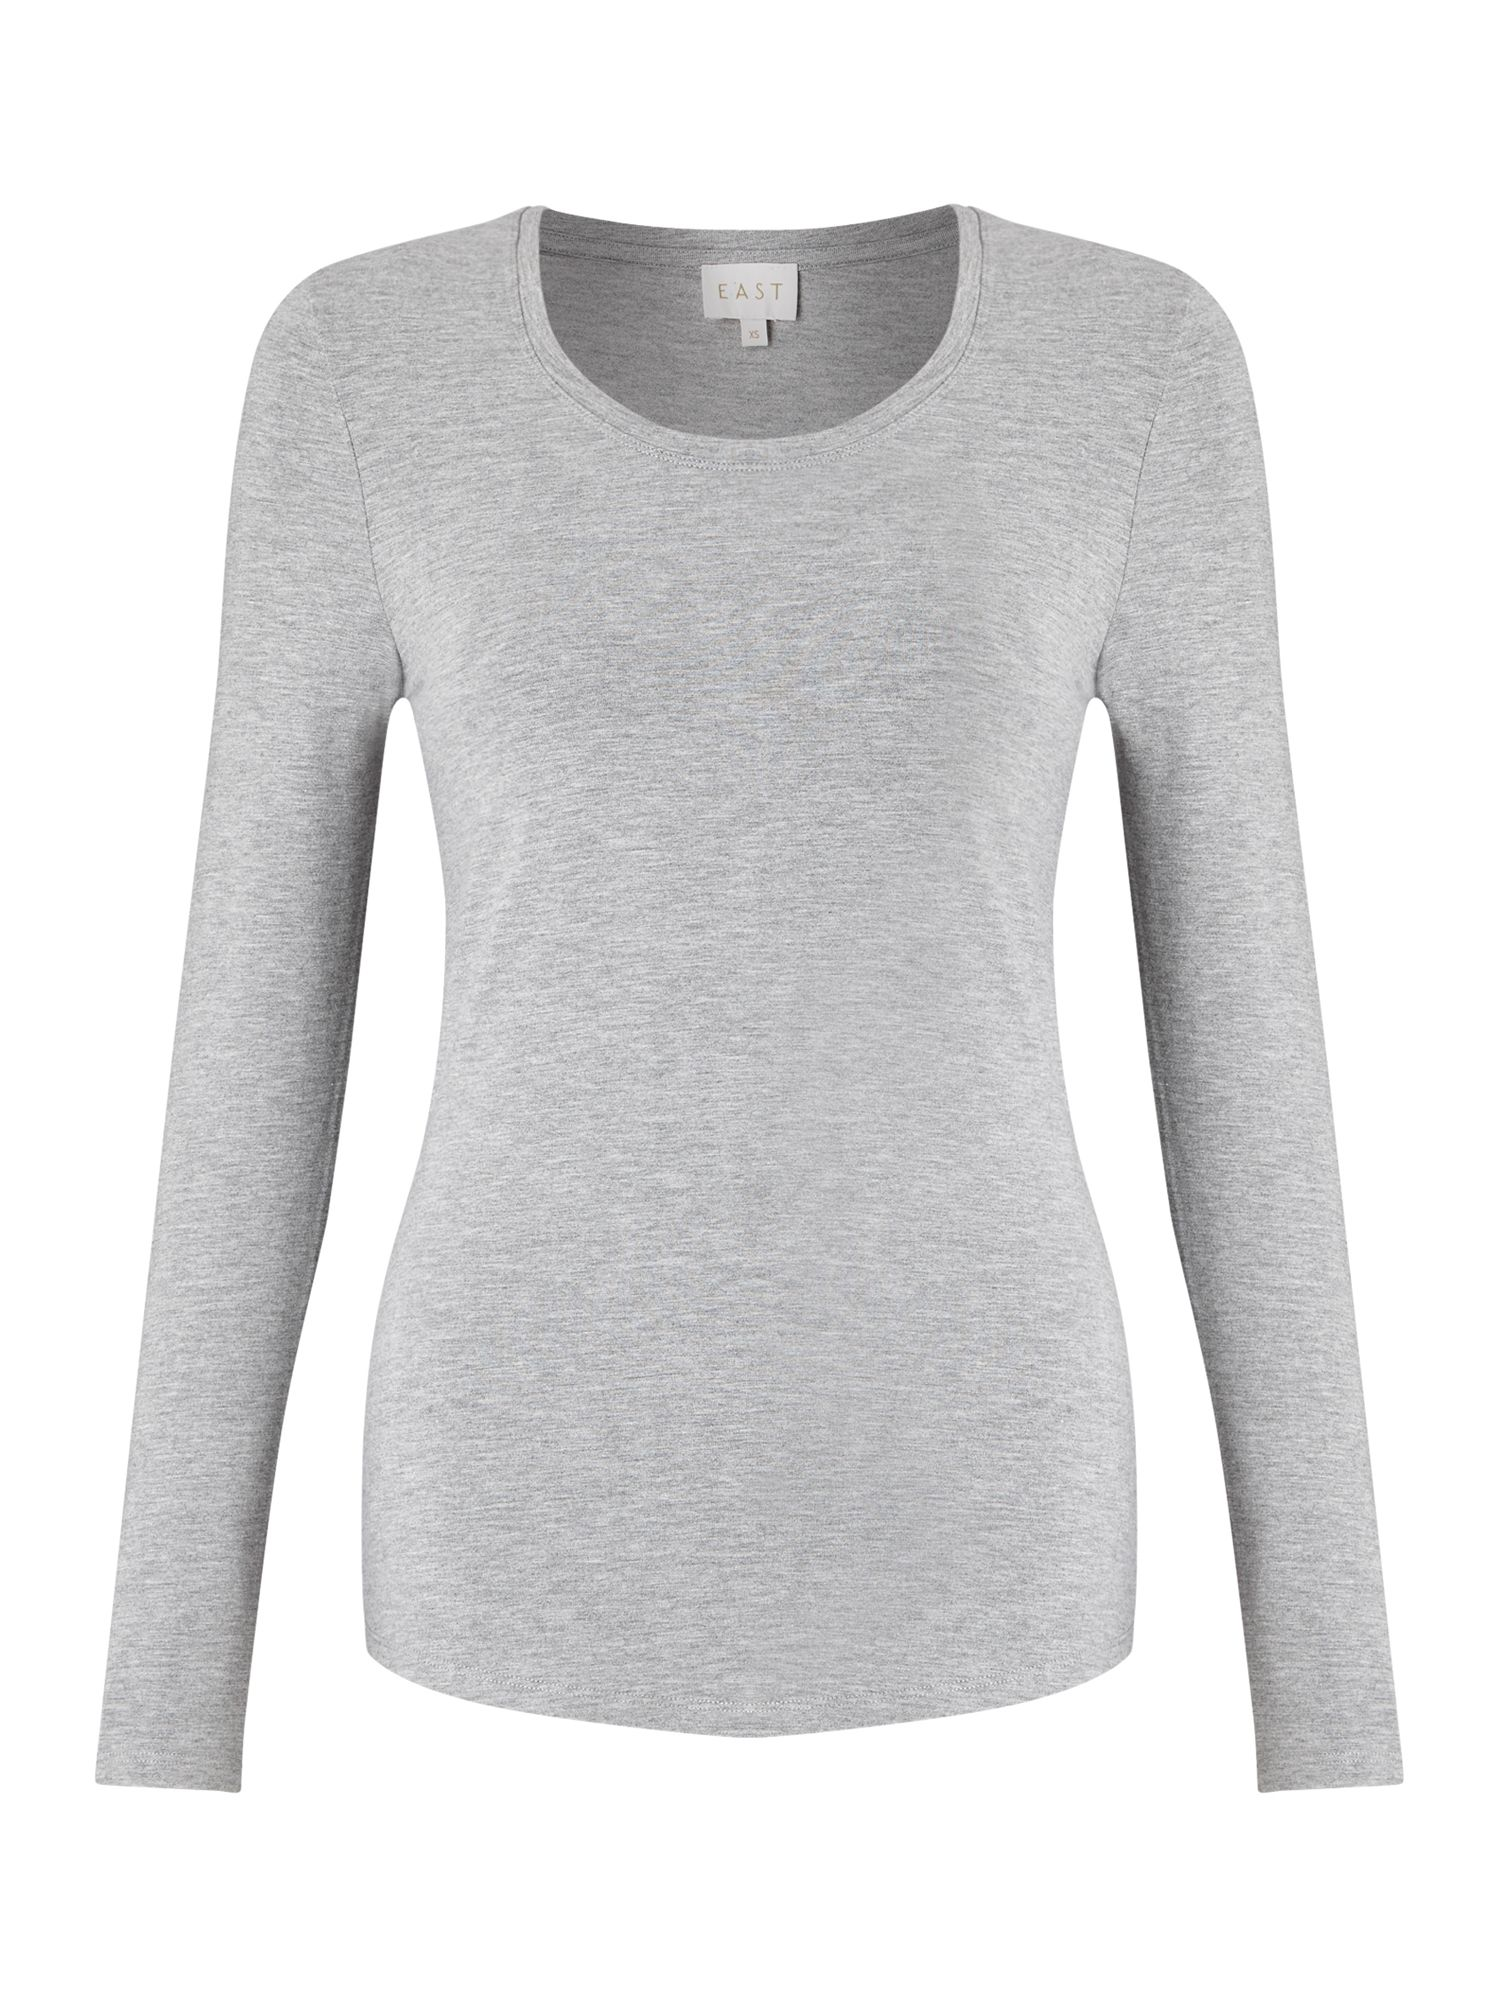 East Long Sleeve Jersey Top, Grey